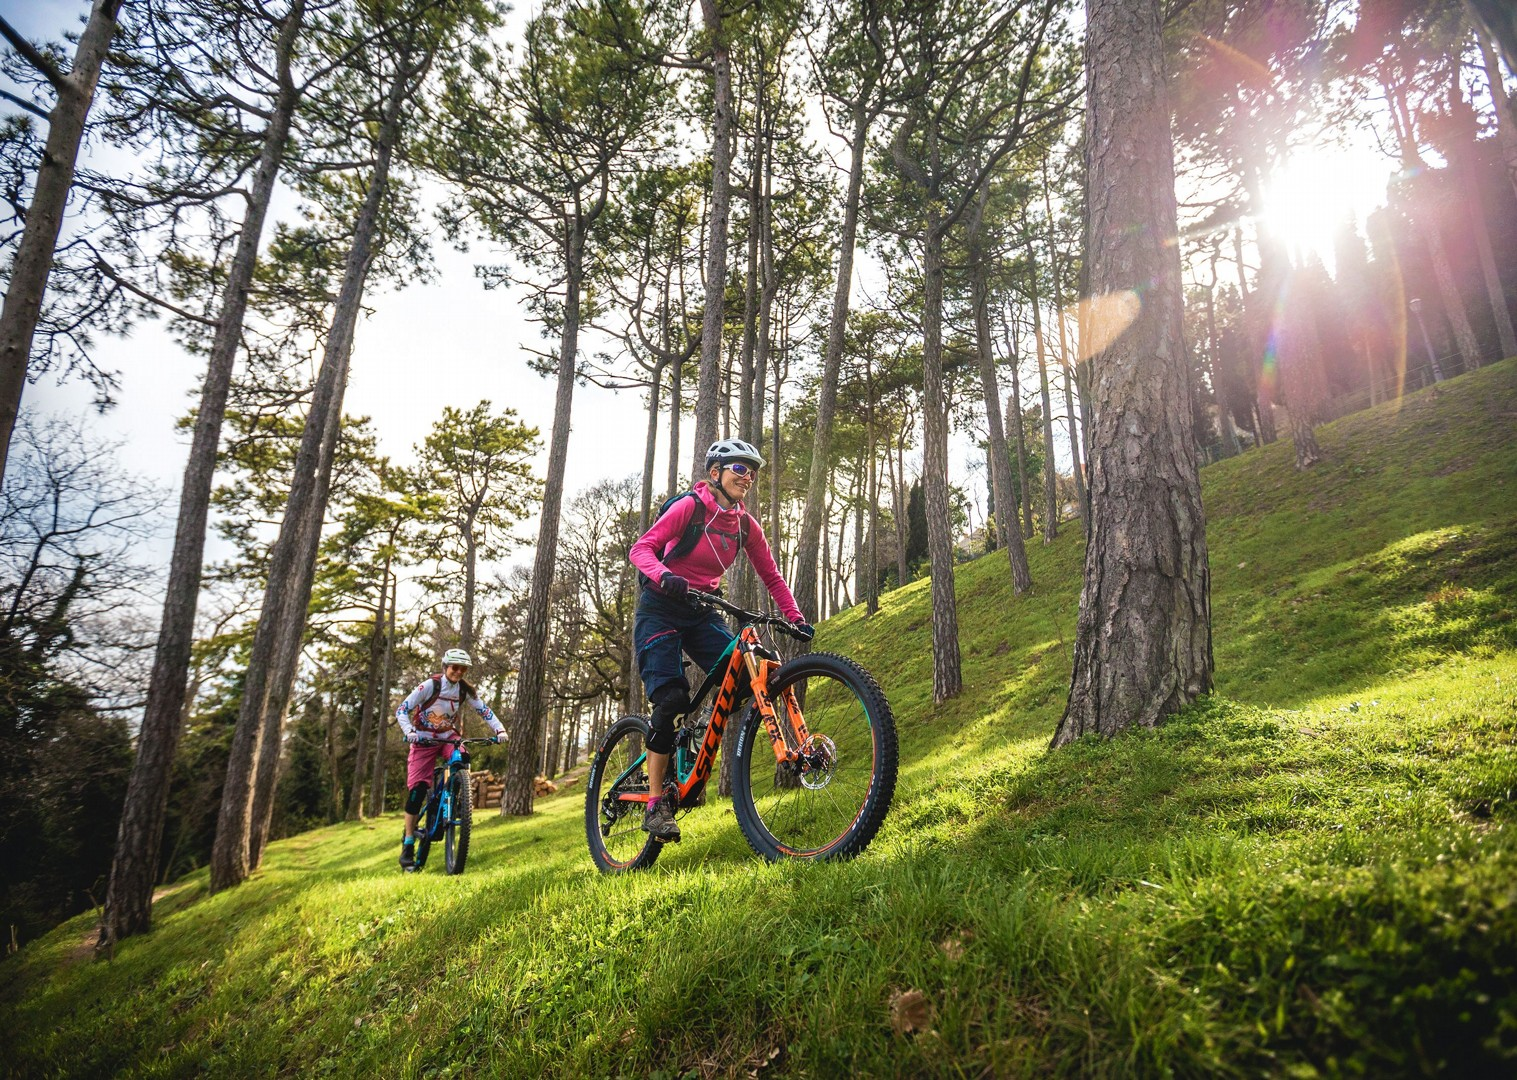 guided-mountain-biking-holiday-croatia-terra-magica.jpg - NEW! Croatia - Terra Magica - Mountain Biking